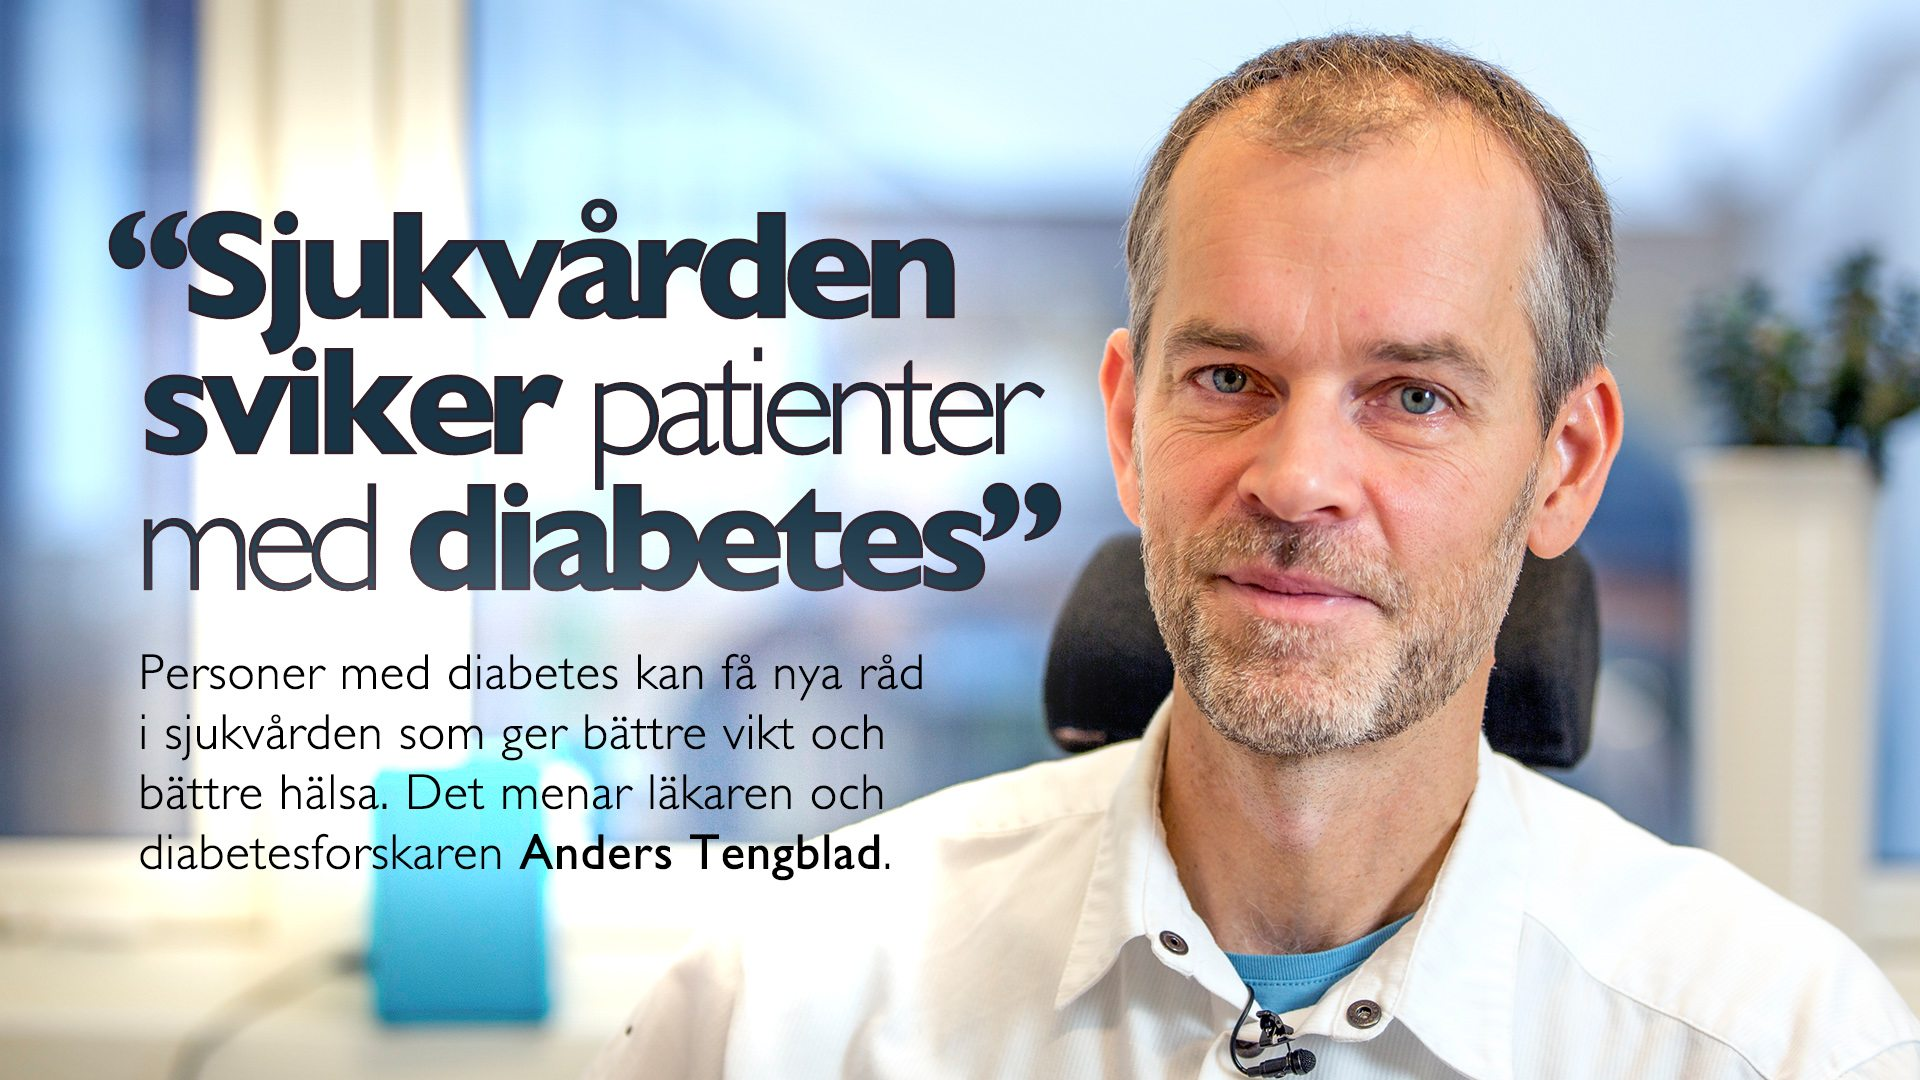 """Sjukvården sviker patienter med diabetes"""